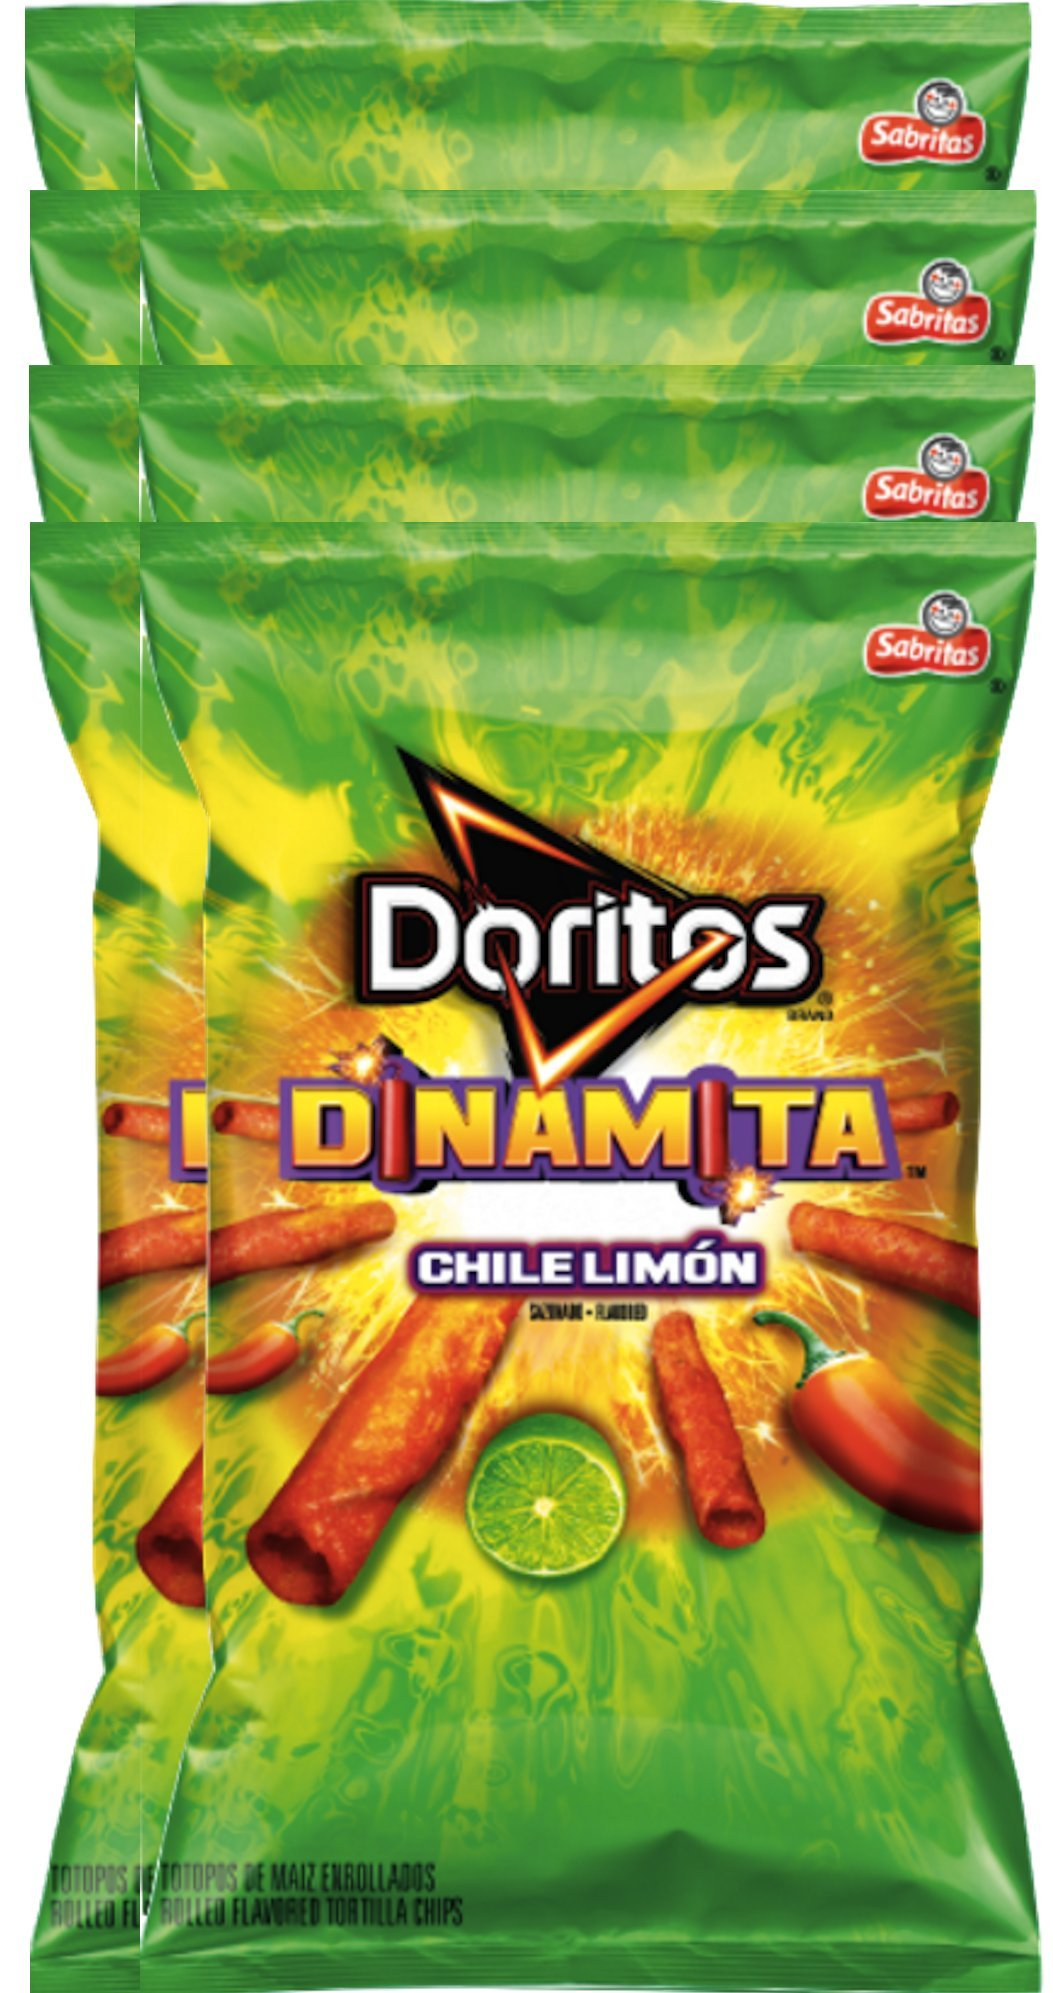 Doritos Dinamita Chile Limon Rolled Flavored Tortilla Chips, 9.25 oz Snack Care Package for College, Military, Sports (8)